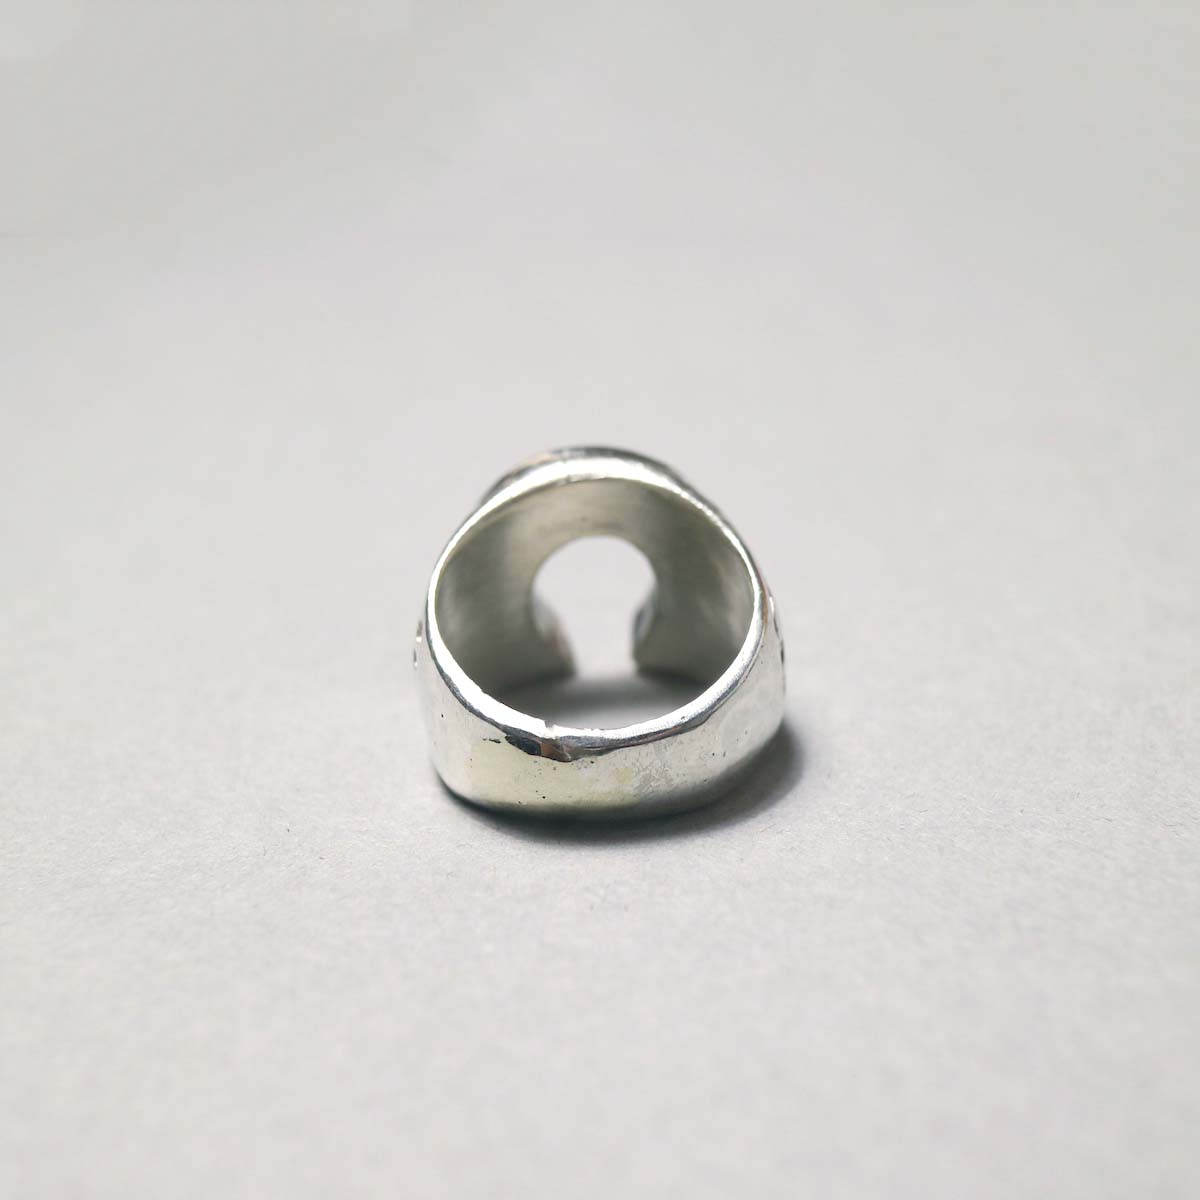 """Indian Jewerly / """"Leslie Lamy"""" (ZUNI) Horse Shoe RIng (Designed)背面"""